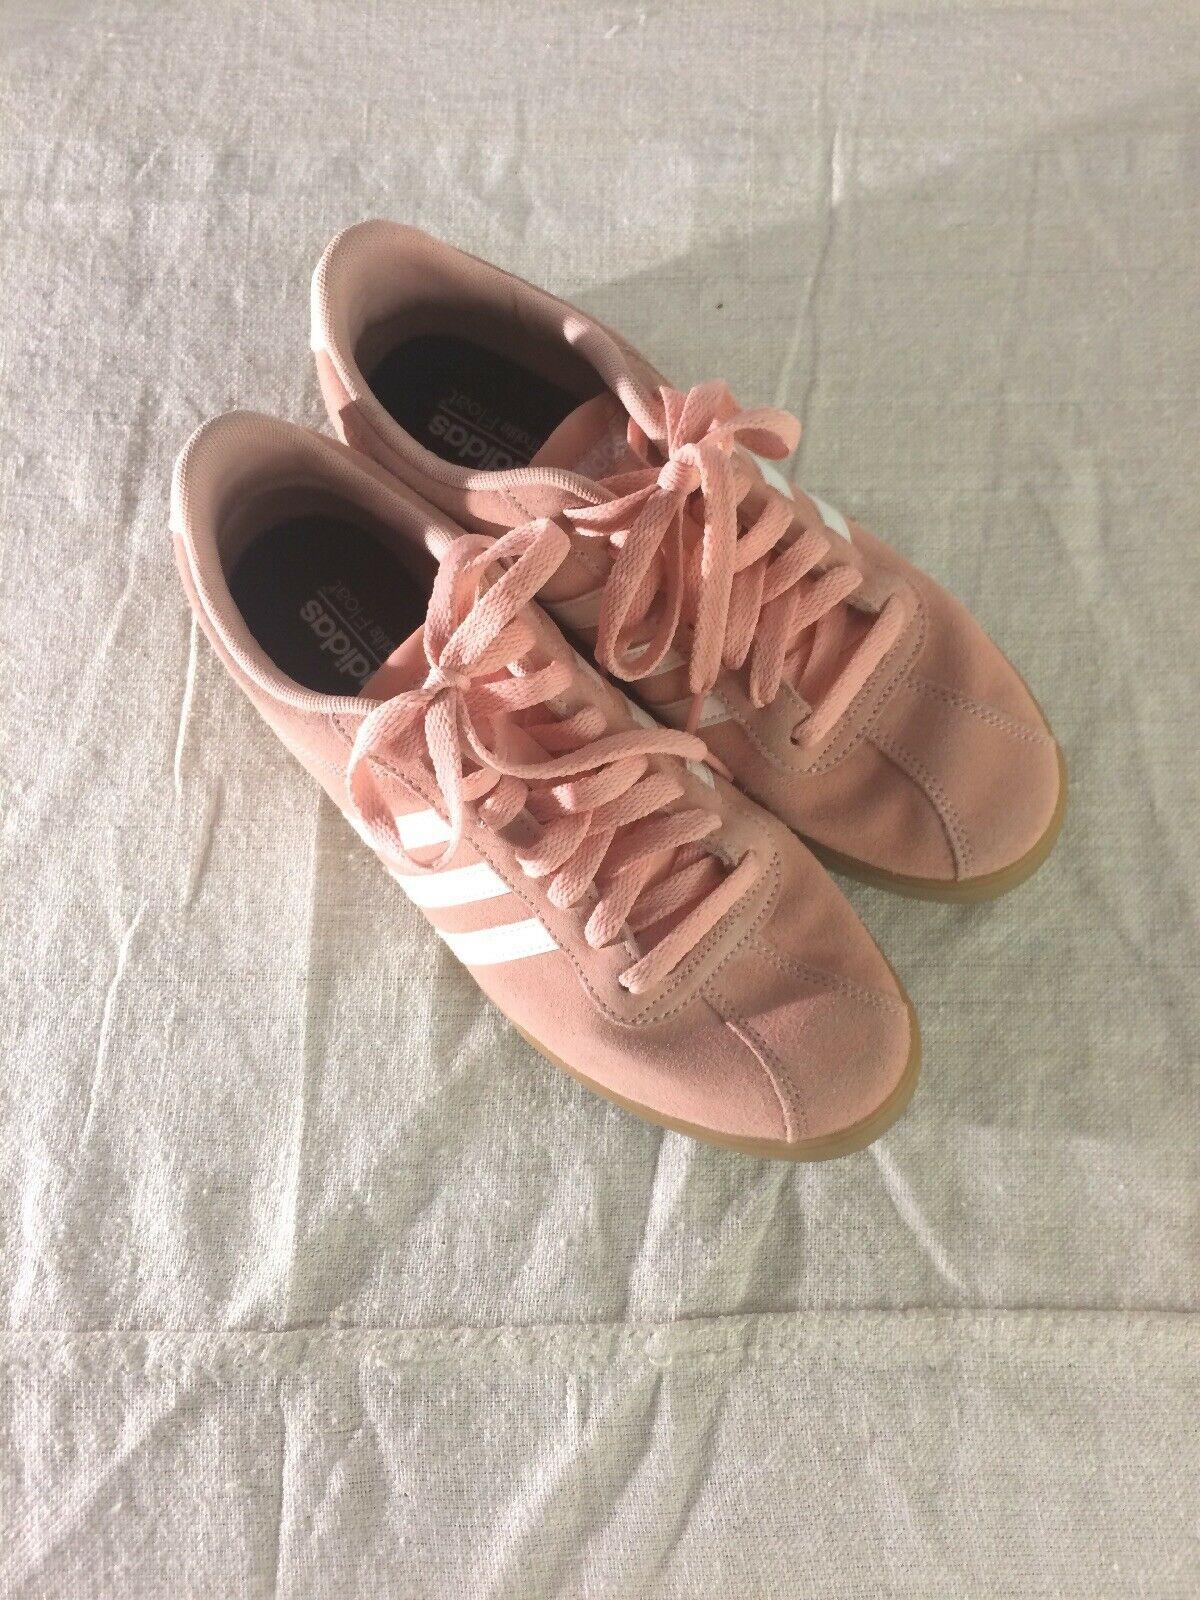 New Adidas Courtset Tennis shoes Size 9 Pink Suede Leather Fashion Sneakers